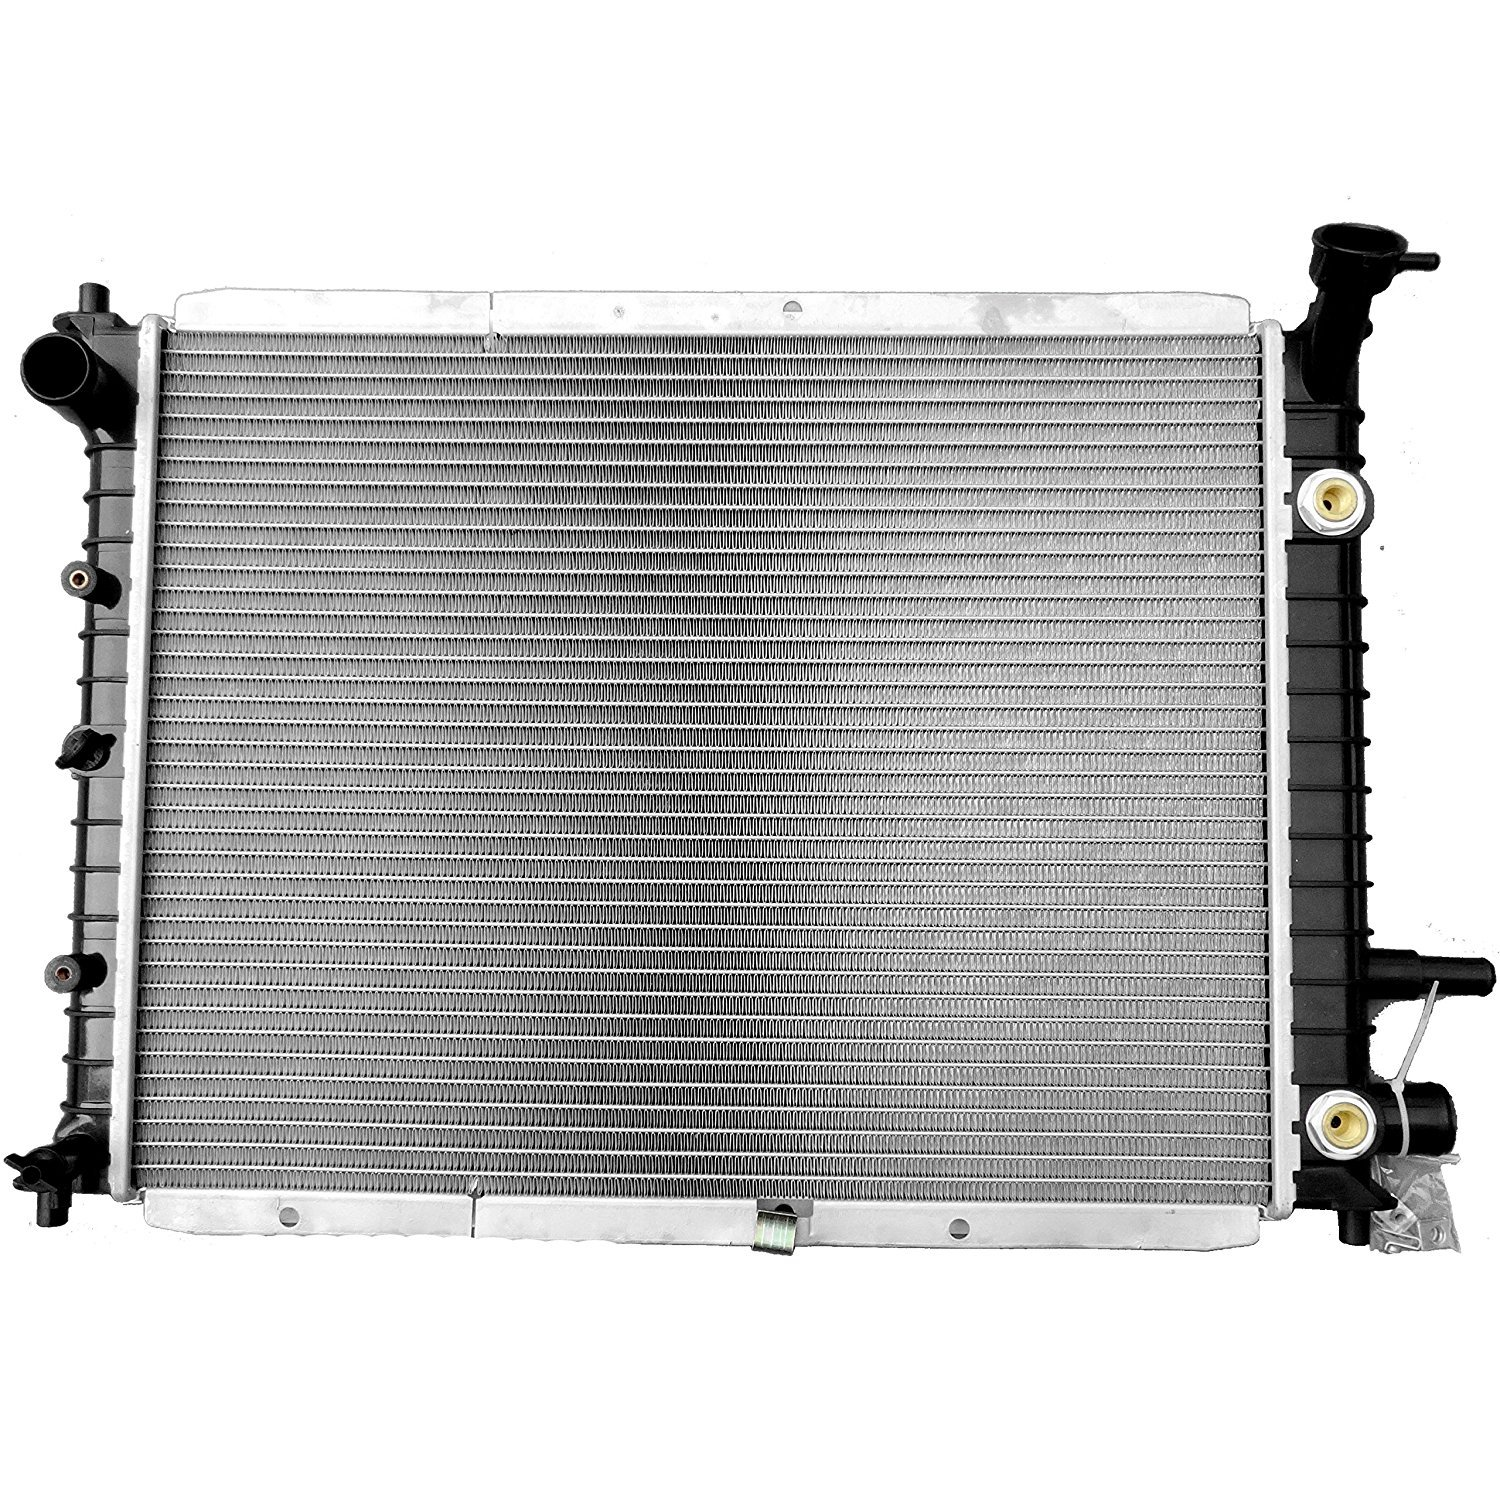 ECCPP Radiator CU2140 Replacement fit for 1998 1999 2000 2001 2002 2003 Ford Escort by ECCPP